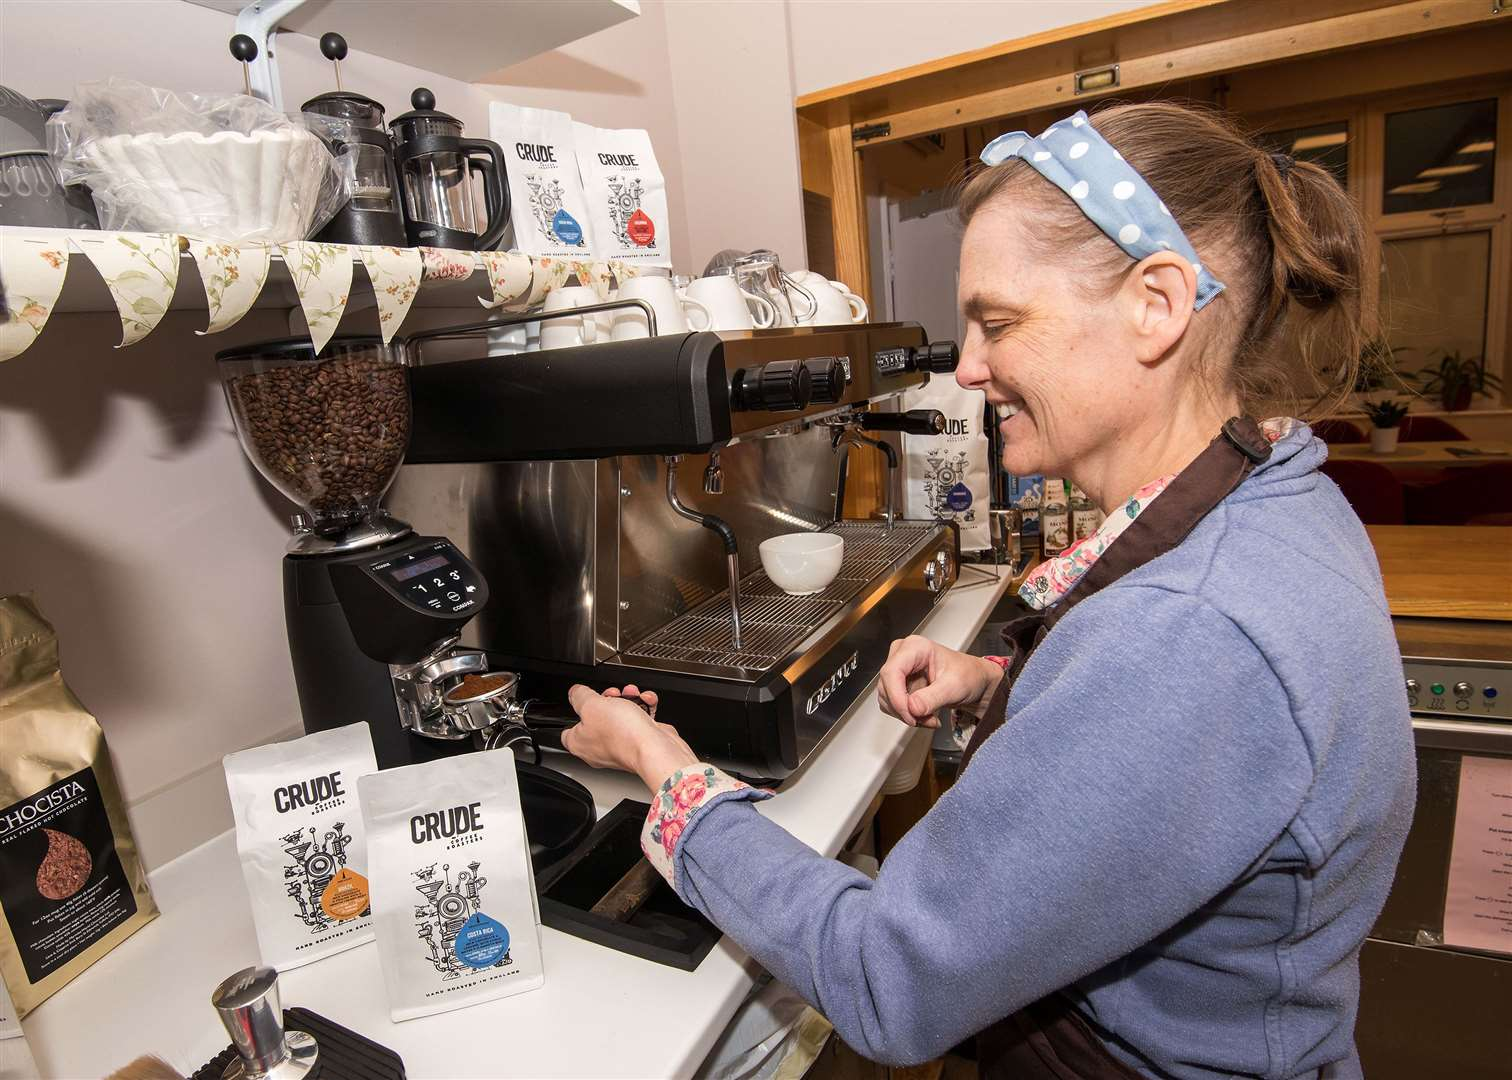 Thurst coffee shop has new improved products on offer